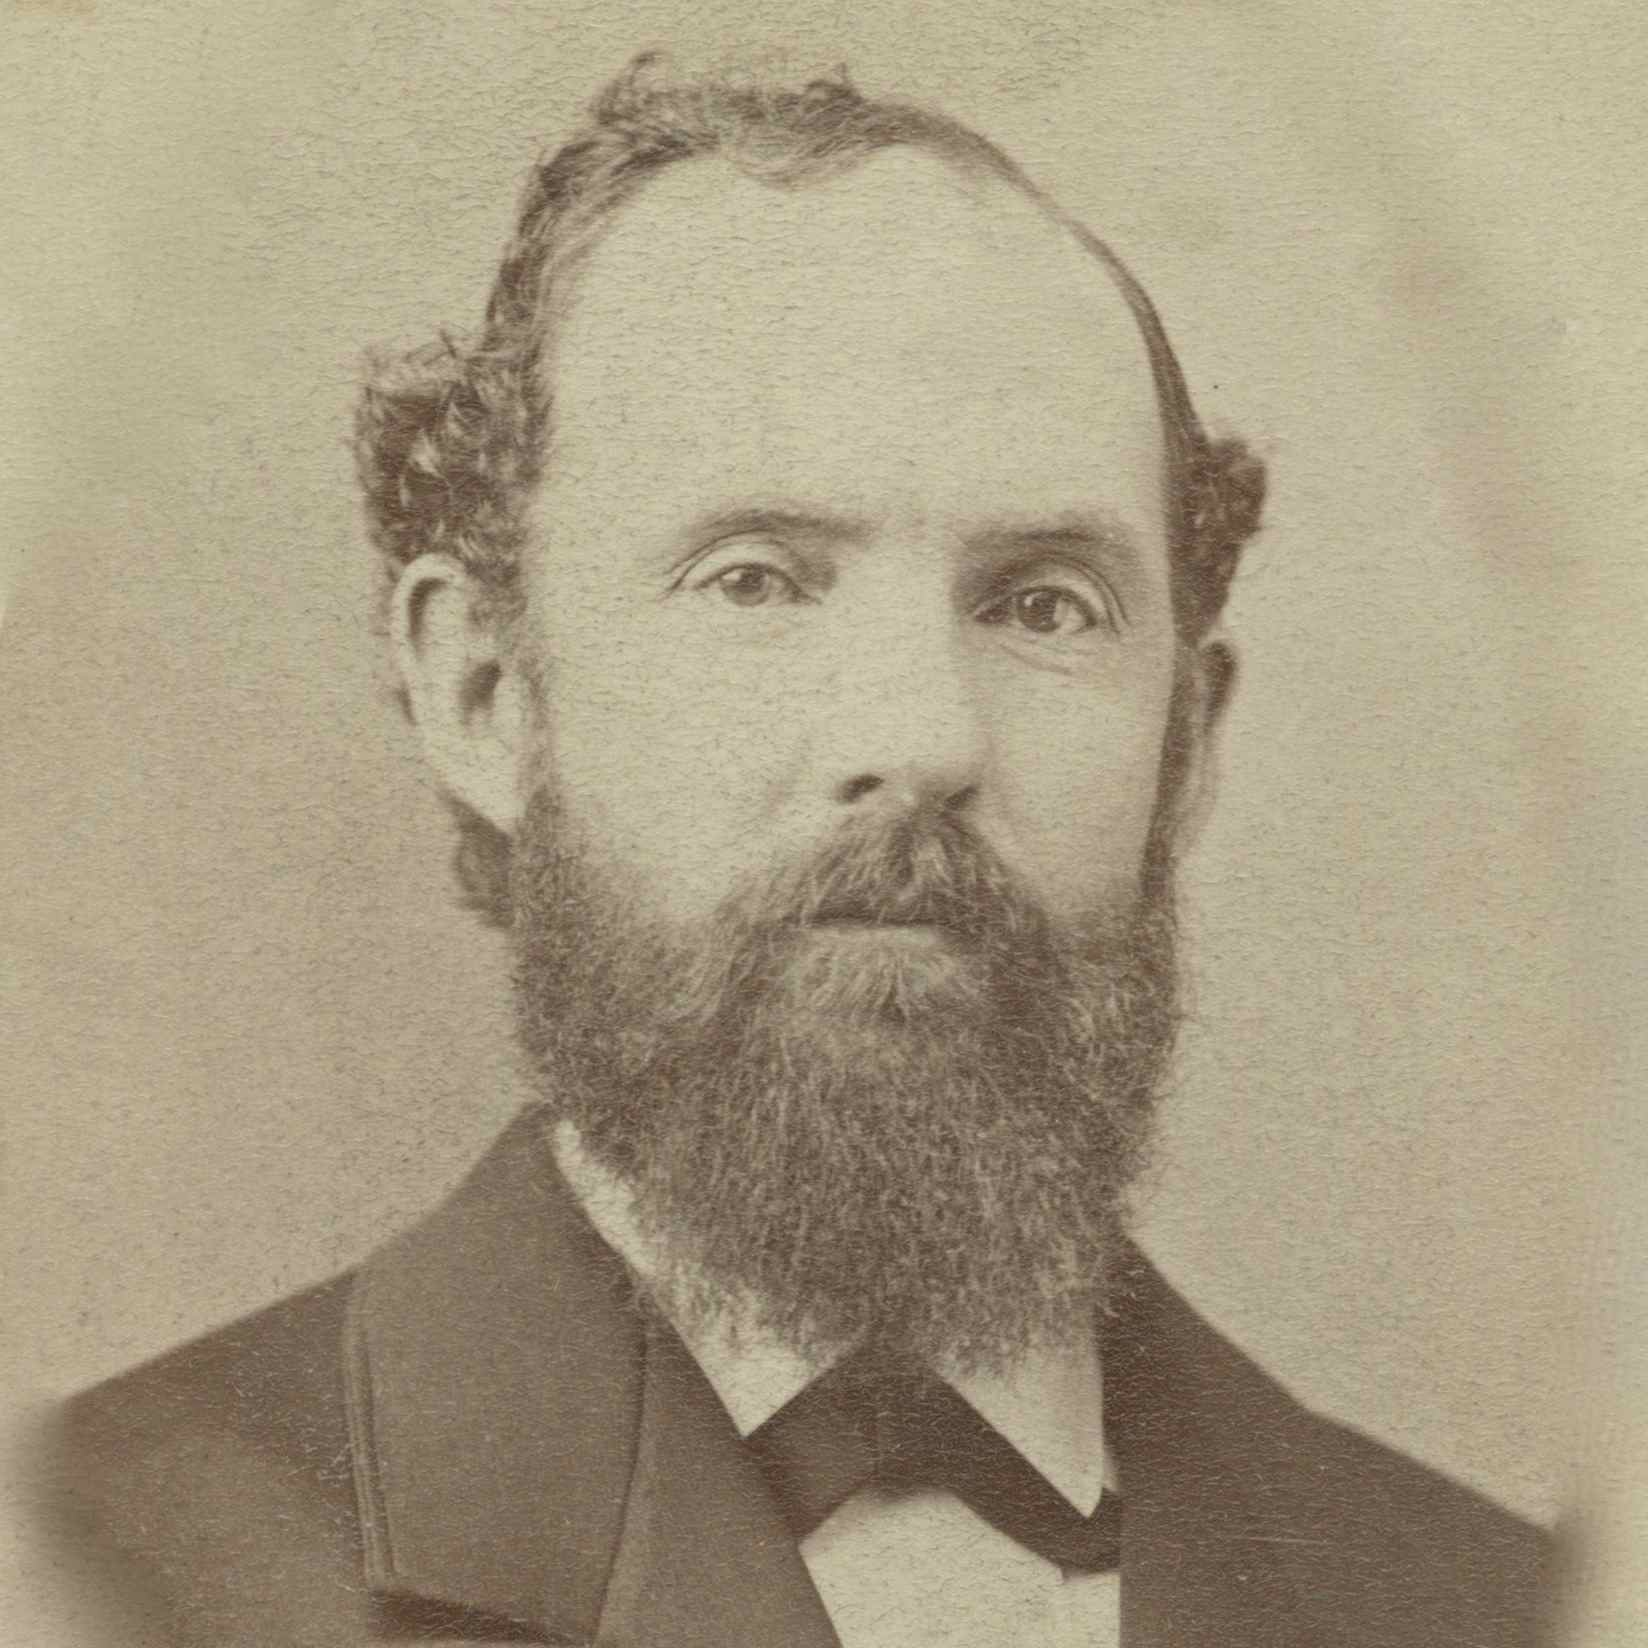 Image taken in the 1870s